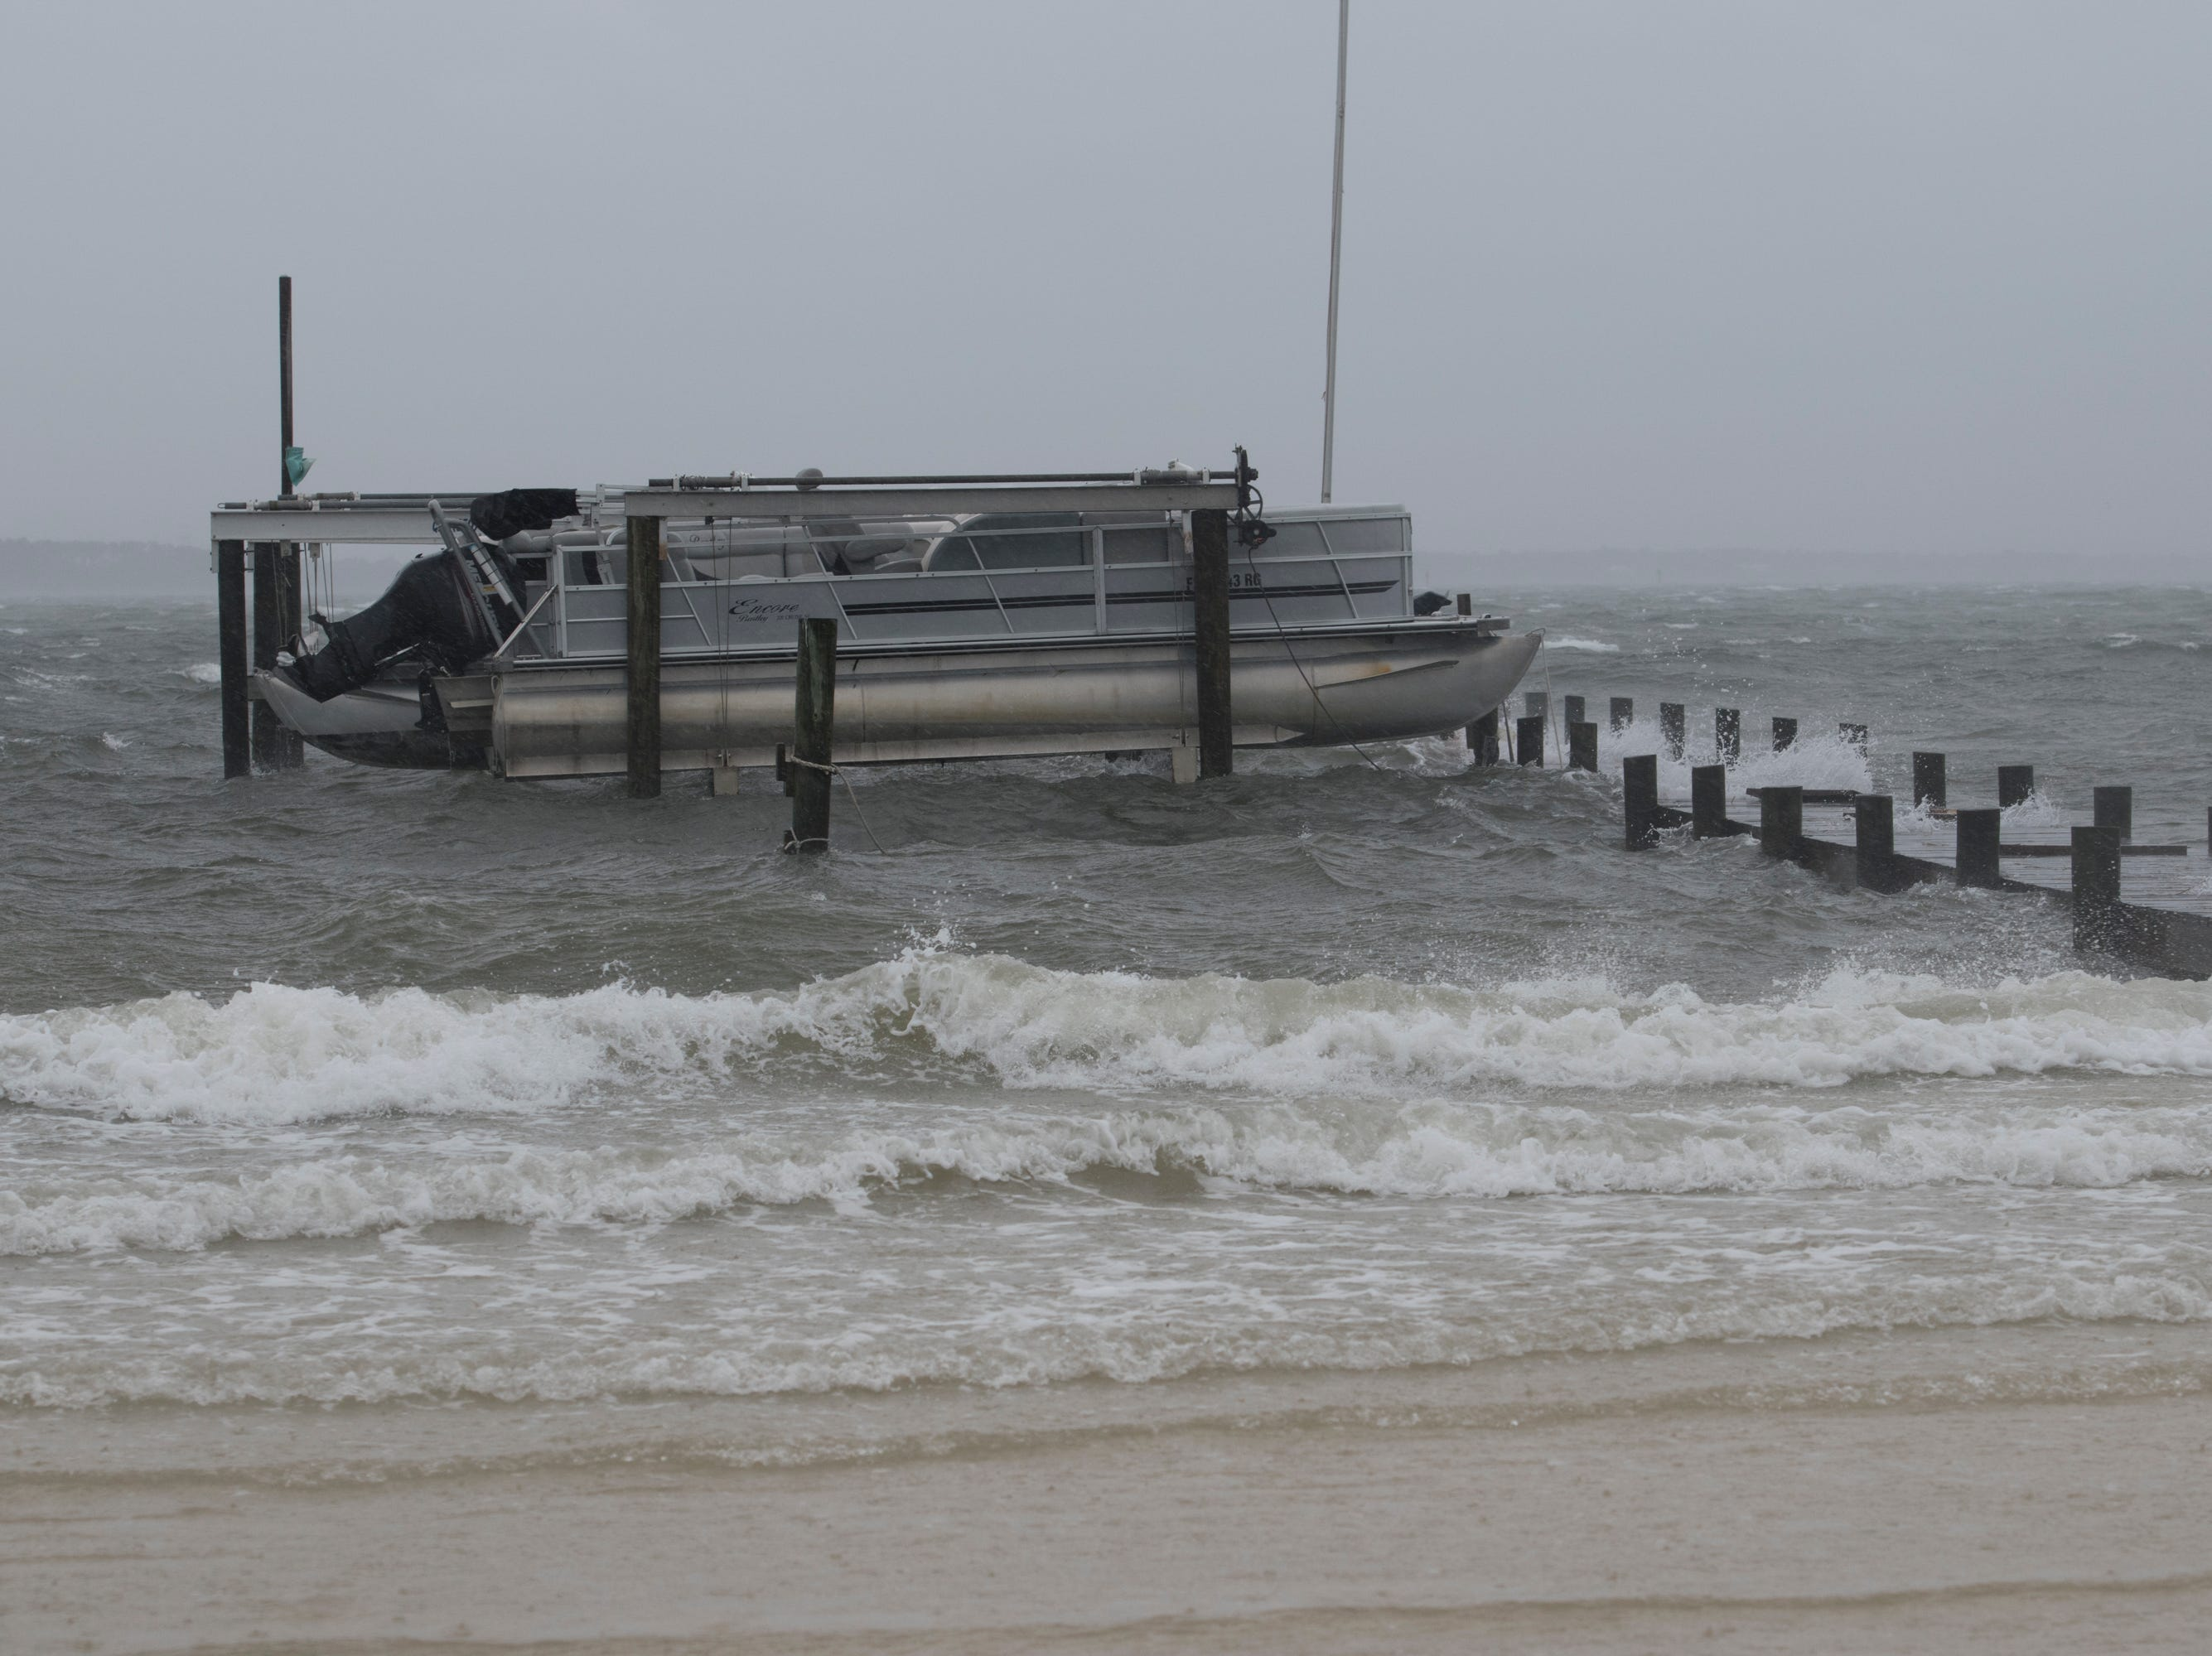 Rough water pounds the dock at Quietwater Beach as Hurricane Michael makes its way through Pensacola on Wednesday, October 10, 2018.